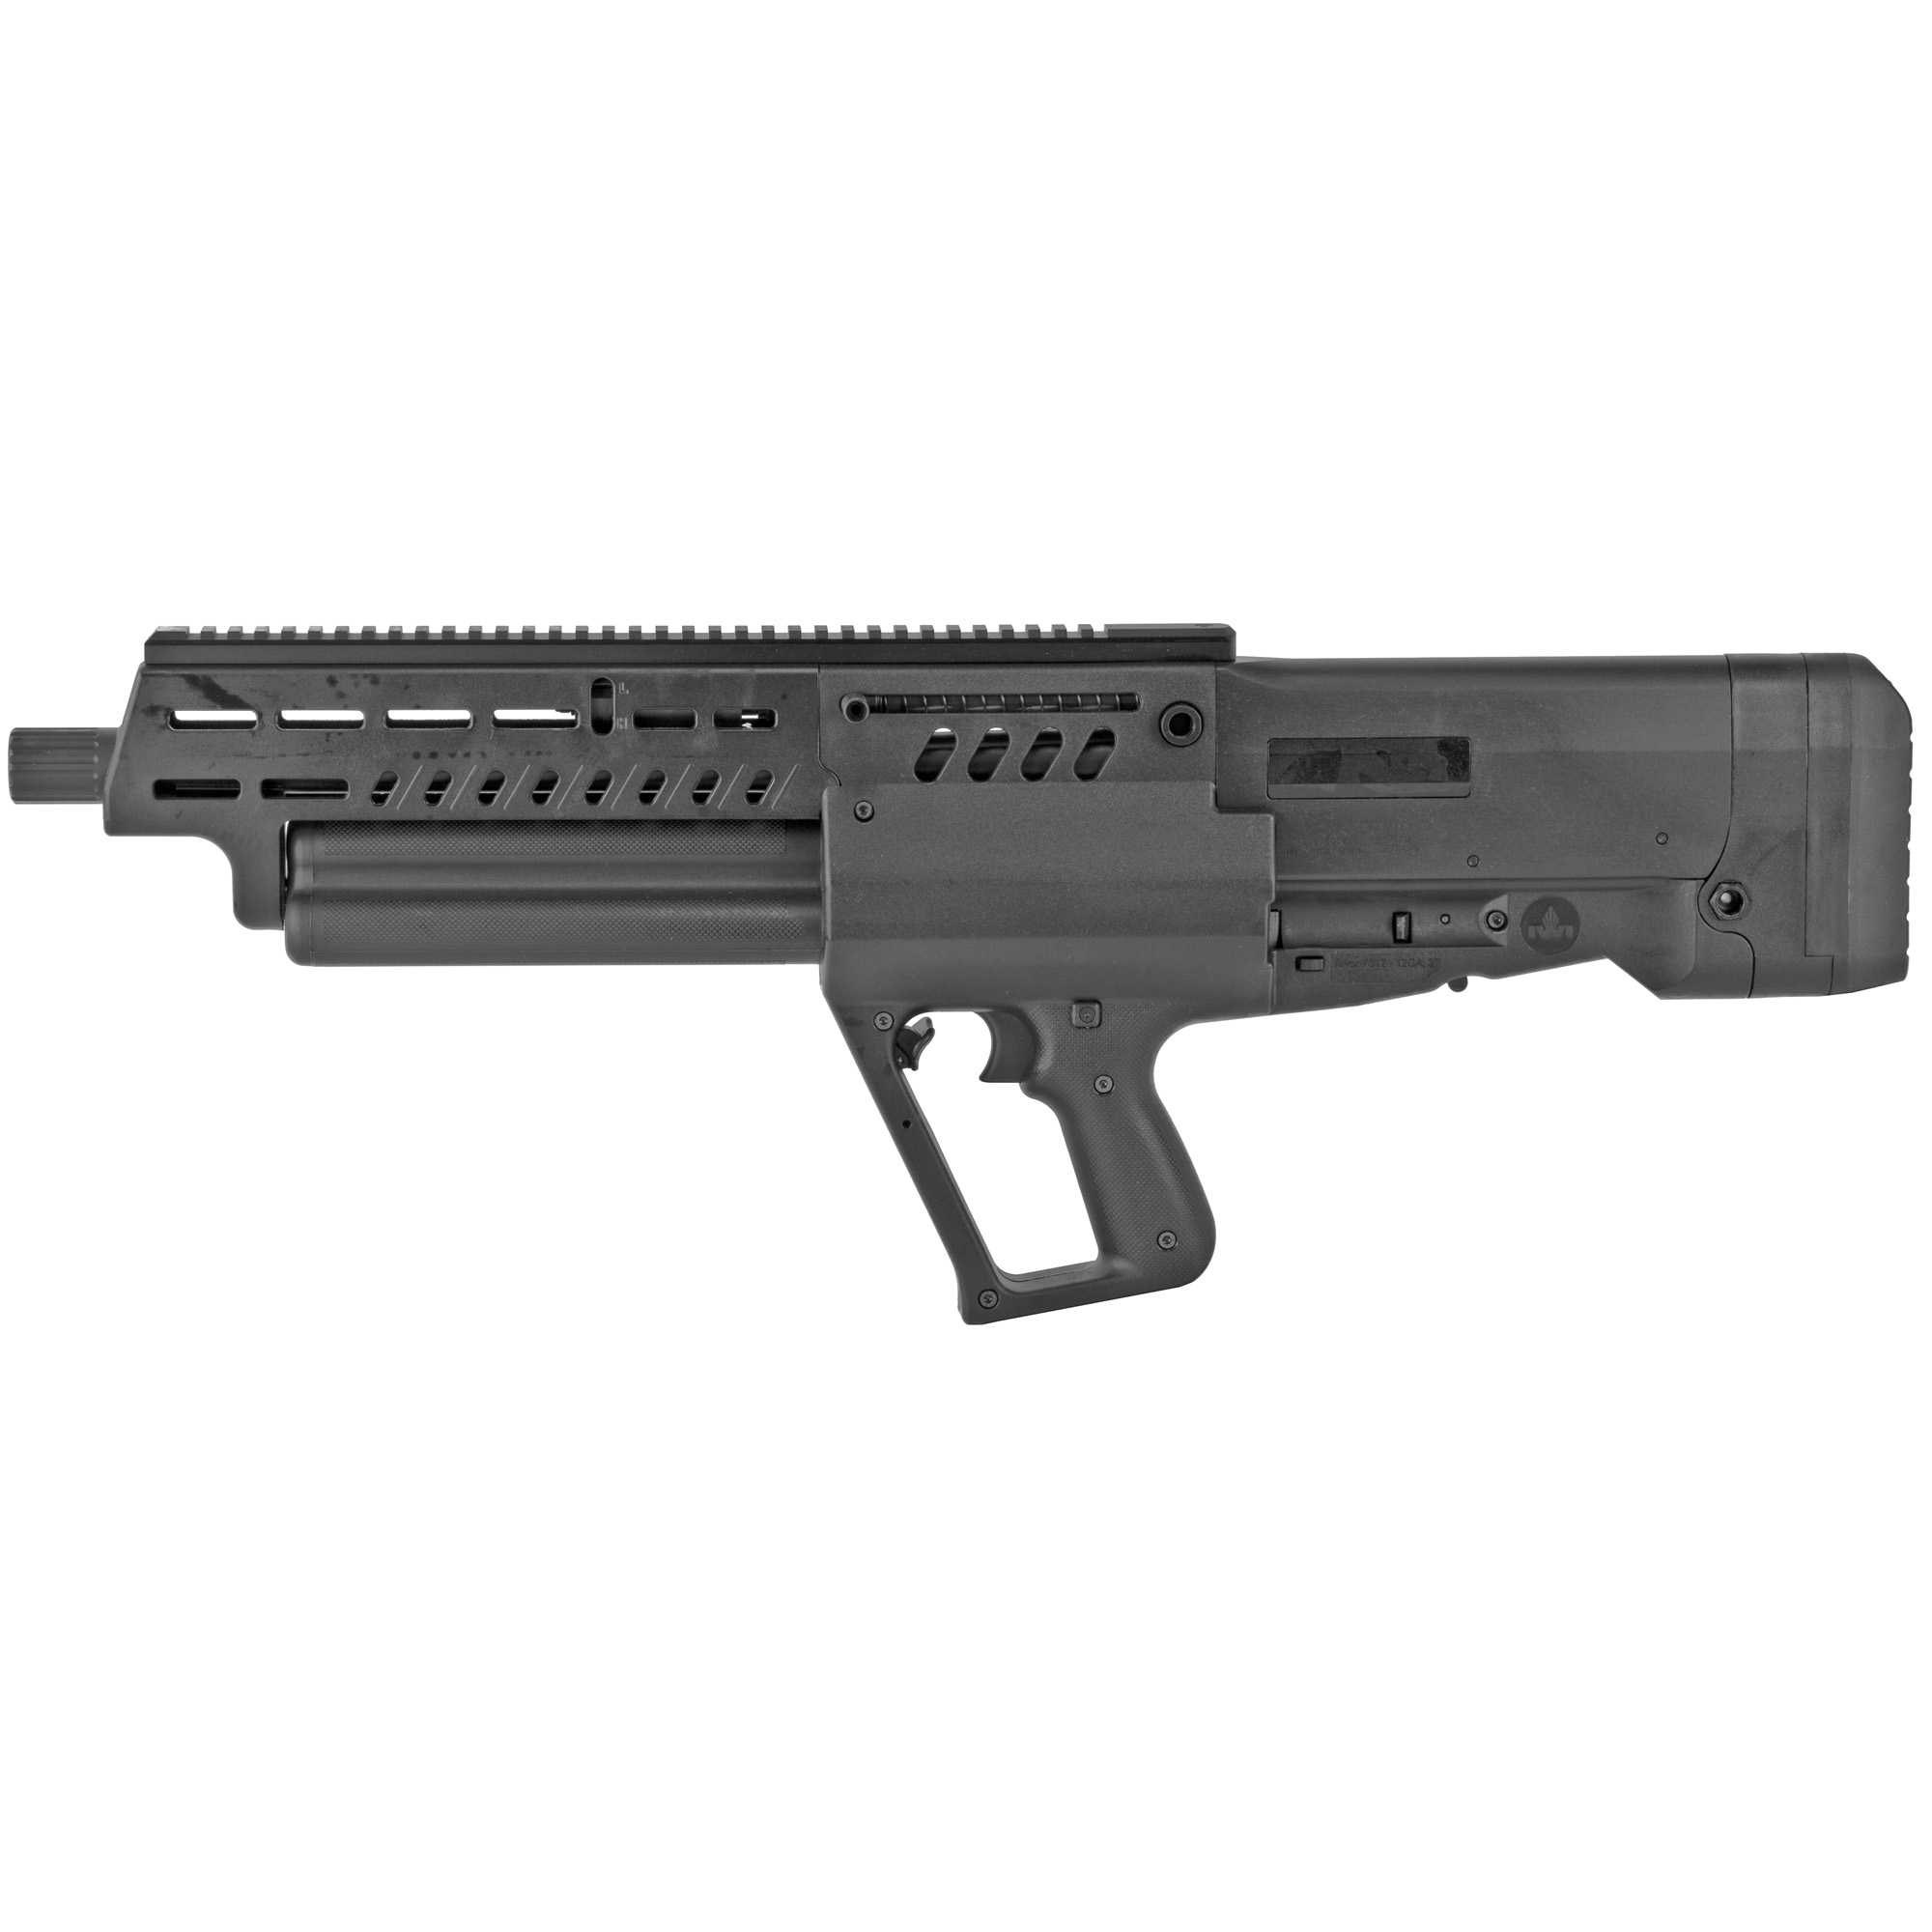 The Tavor TS12 12 gauge shotgun is a gas regulated bullpup shotgun that can be configured for either right or left side ejection and operation. It feeds from one of three magazine tubes which can hold four 3 inch shotgun shells or five 2 3/4 inch shotgun shells. This means that the potential magazine capacity is 15 rounds plus one additional round in the chamber.